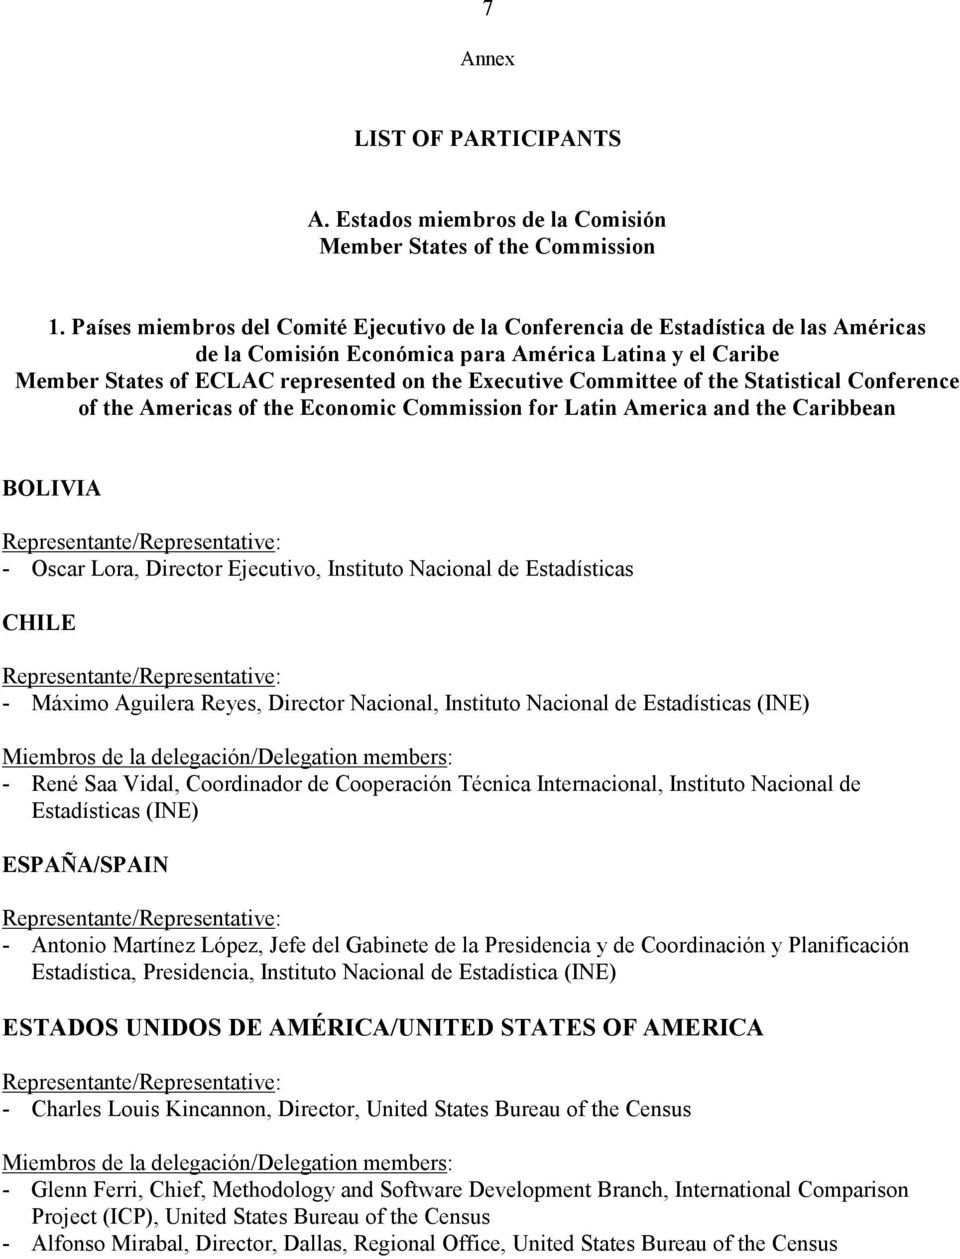 Committee of the Statistical Conference of the Americas of the Economic Commission for Latin America and the Caribbean BOLIVIA - Oscar Lora, Director Ejecutivo, Instituto Nacional de Estadísticas